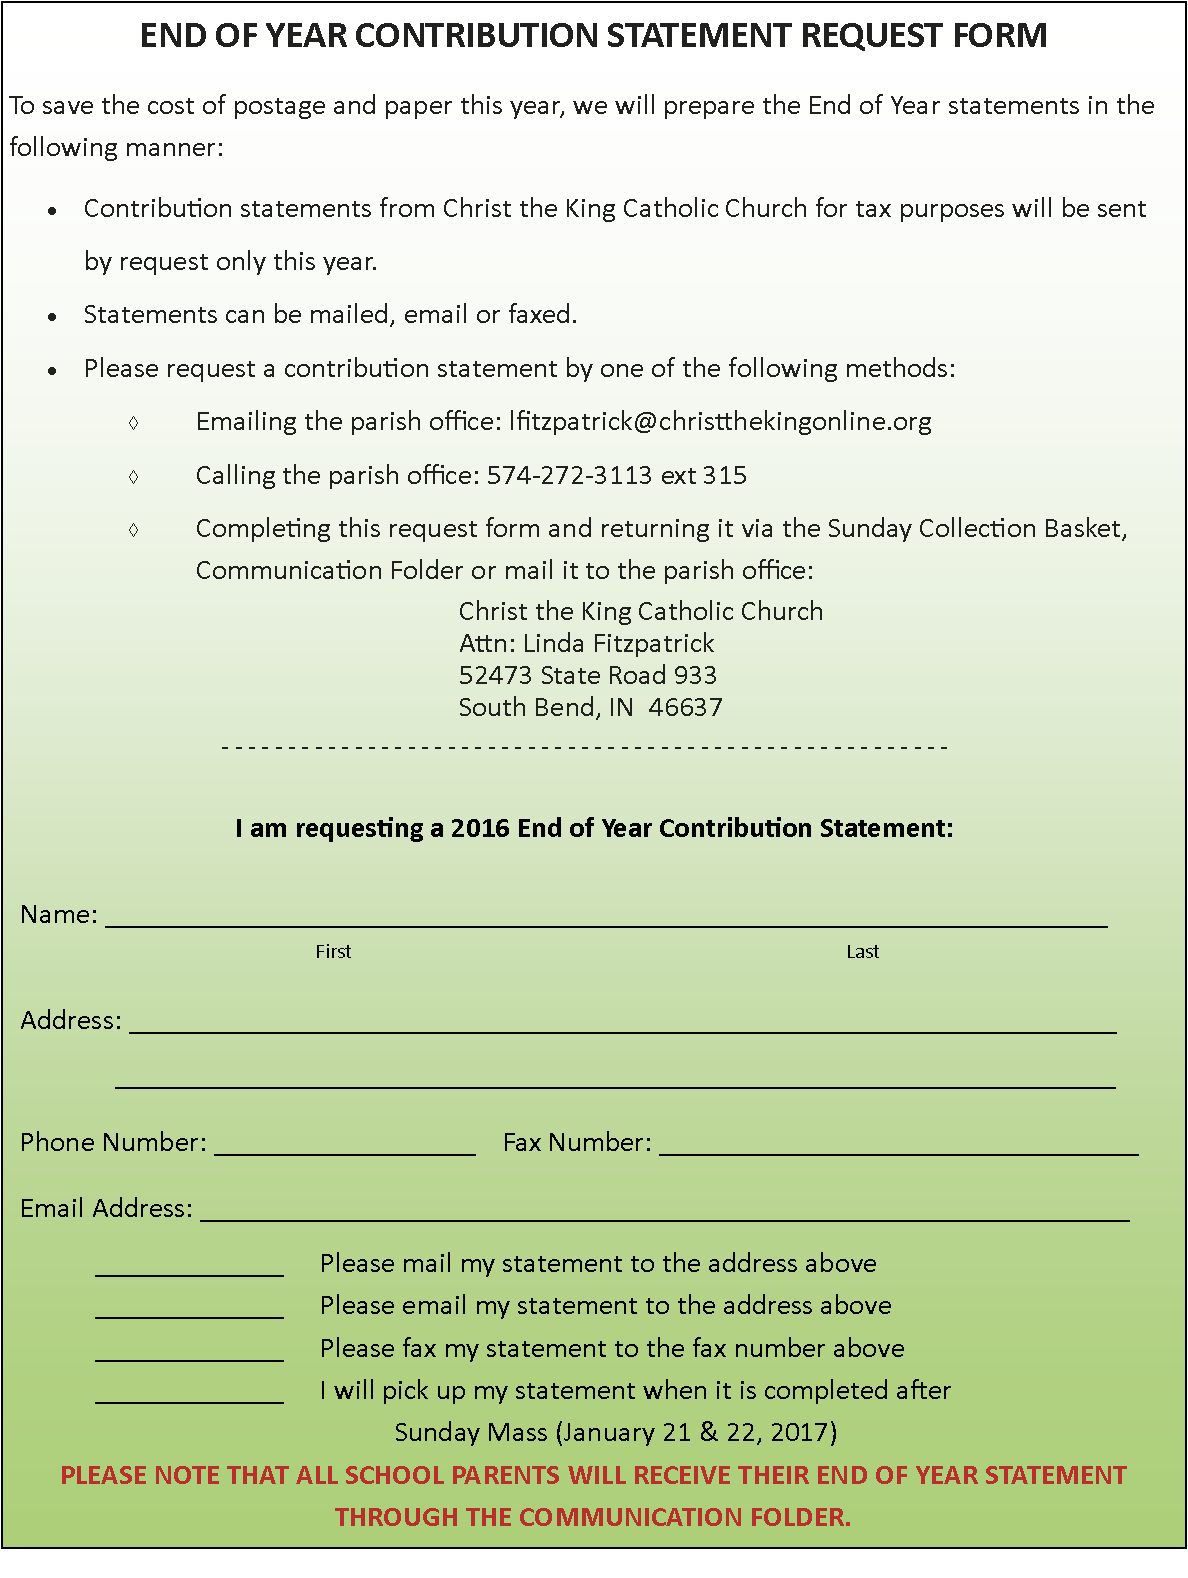 Christ The King Catholic Church End Of Year Statement Request Form